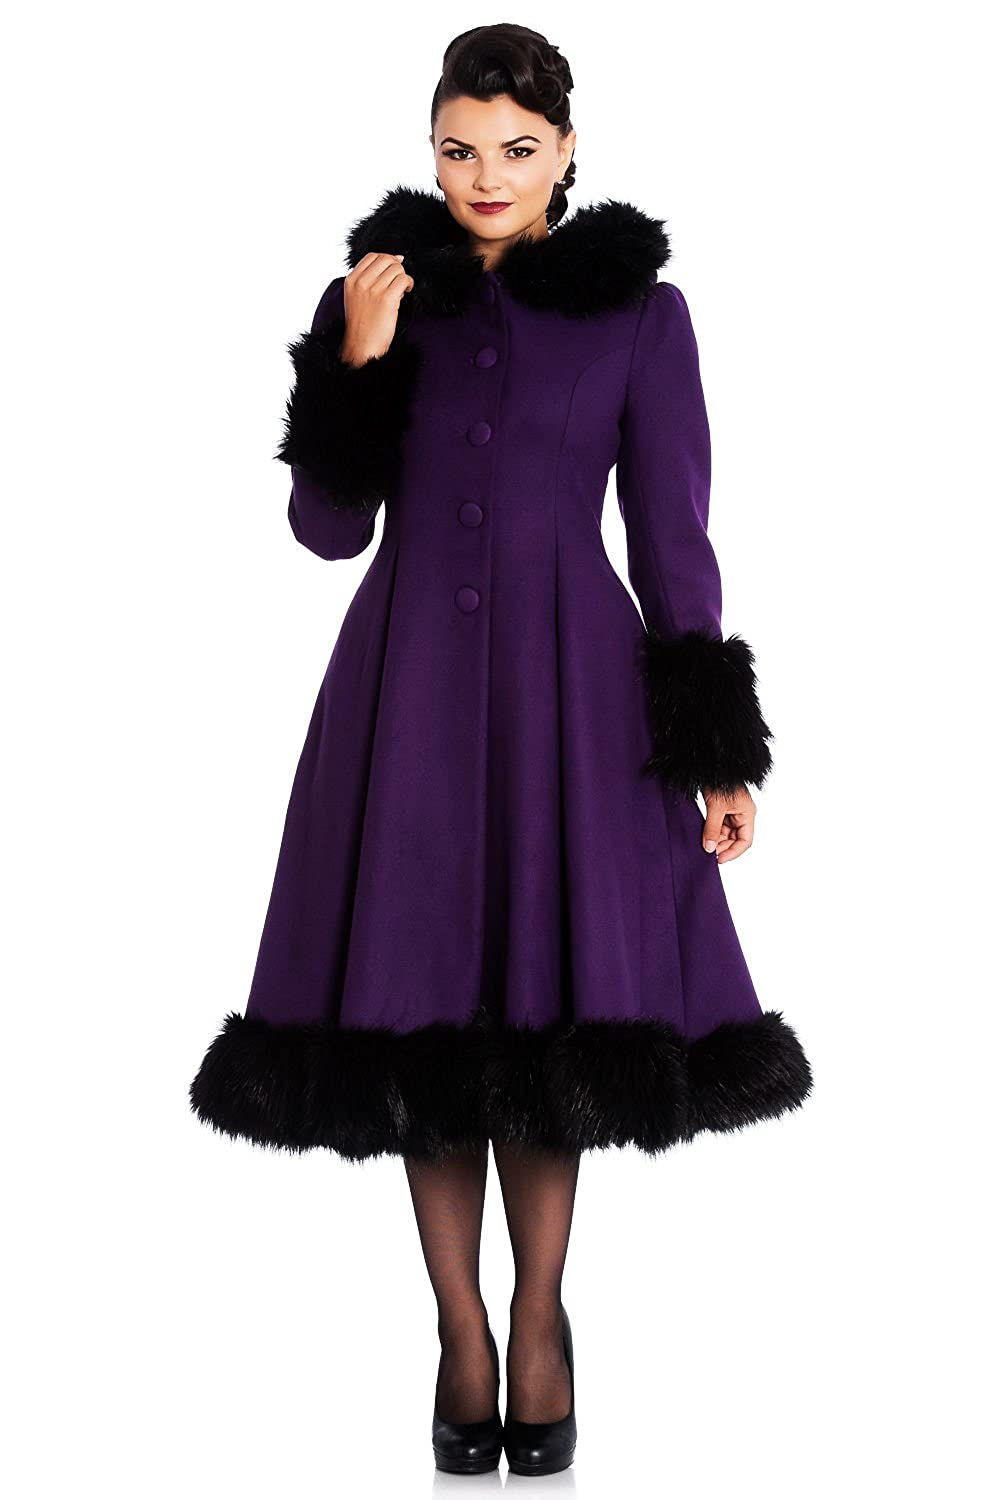 Vintage Coats & Jackets | Retro Coats and Jackets STUNNING purple black HELL BUNNY ELVIRA long VTG COAT XS S M L XL 10 12 14 16 BEAUTIFUL & ELEGANT 1950s 50s MARILYN evening glamour £112.49 AT vintagedancer.com